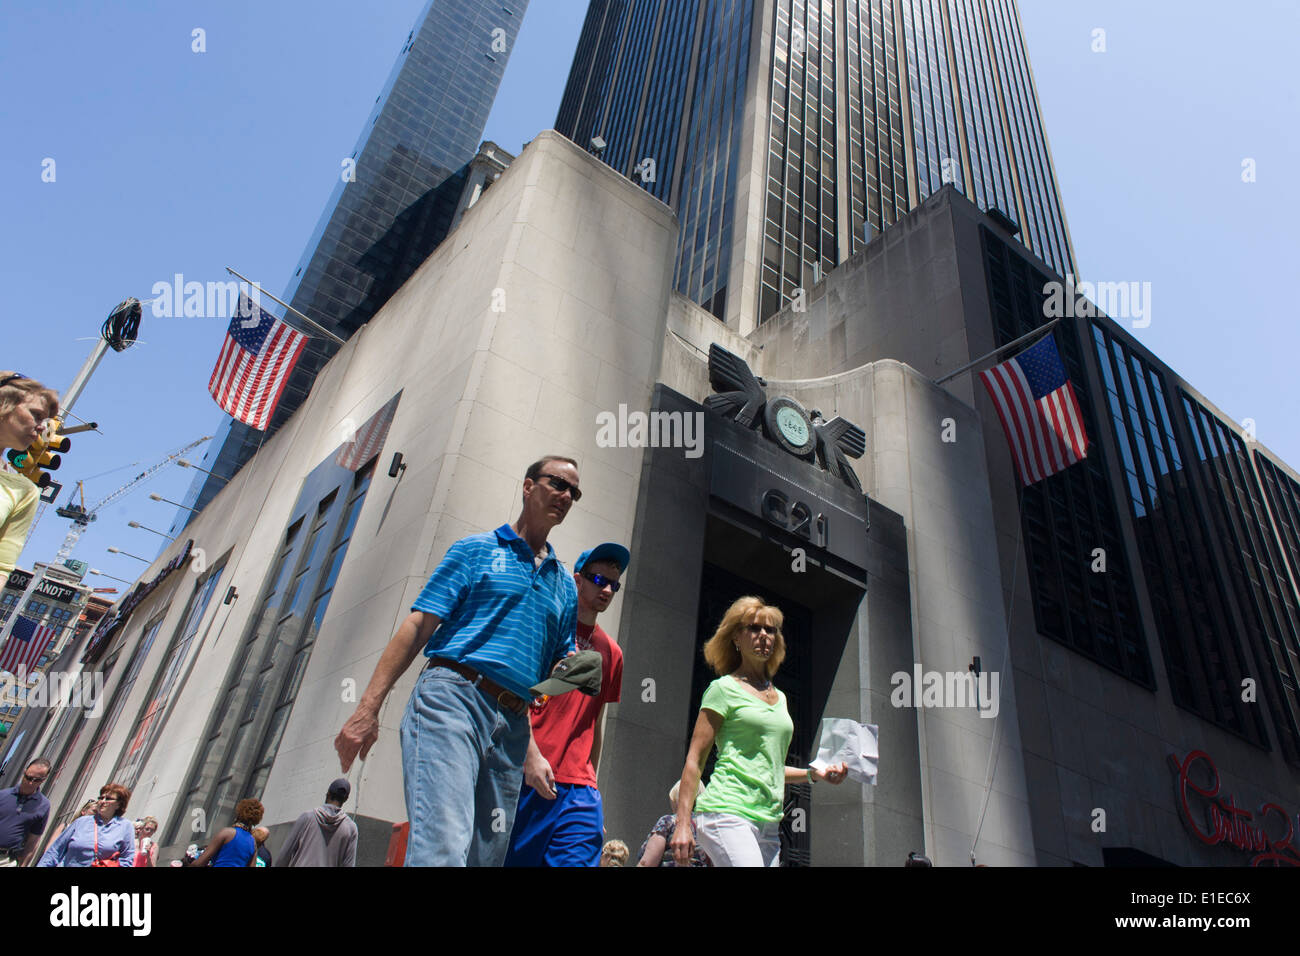 American consumers pass the tall doorway of the East River Savings Bank in Lower Manhattan, New York City. - Stock Image